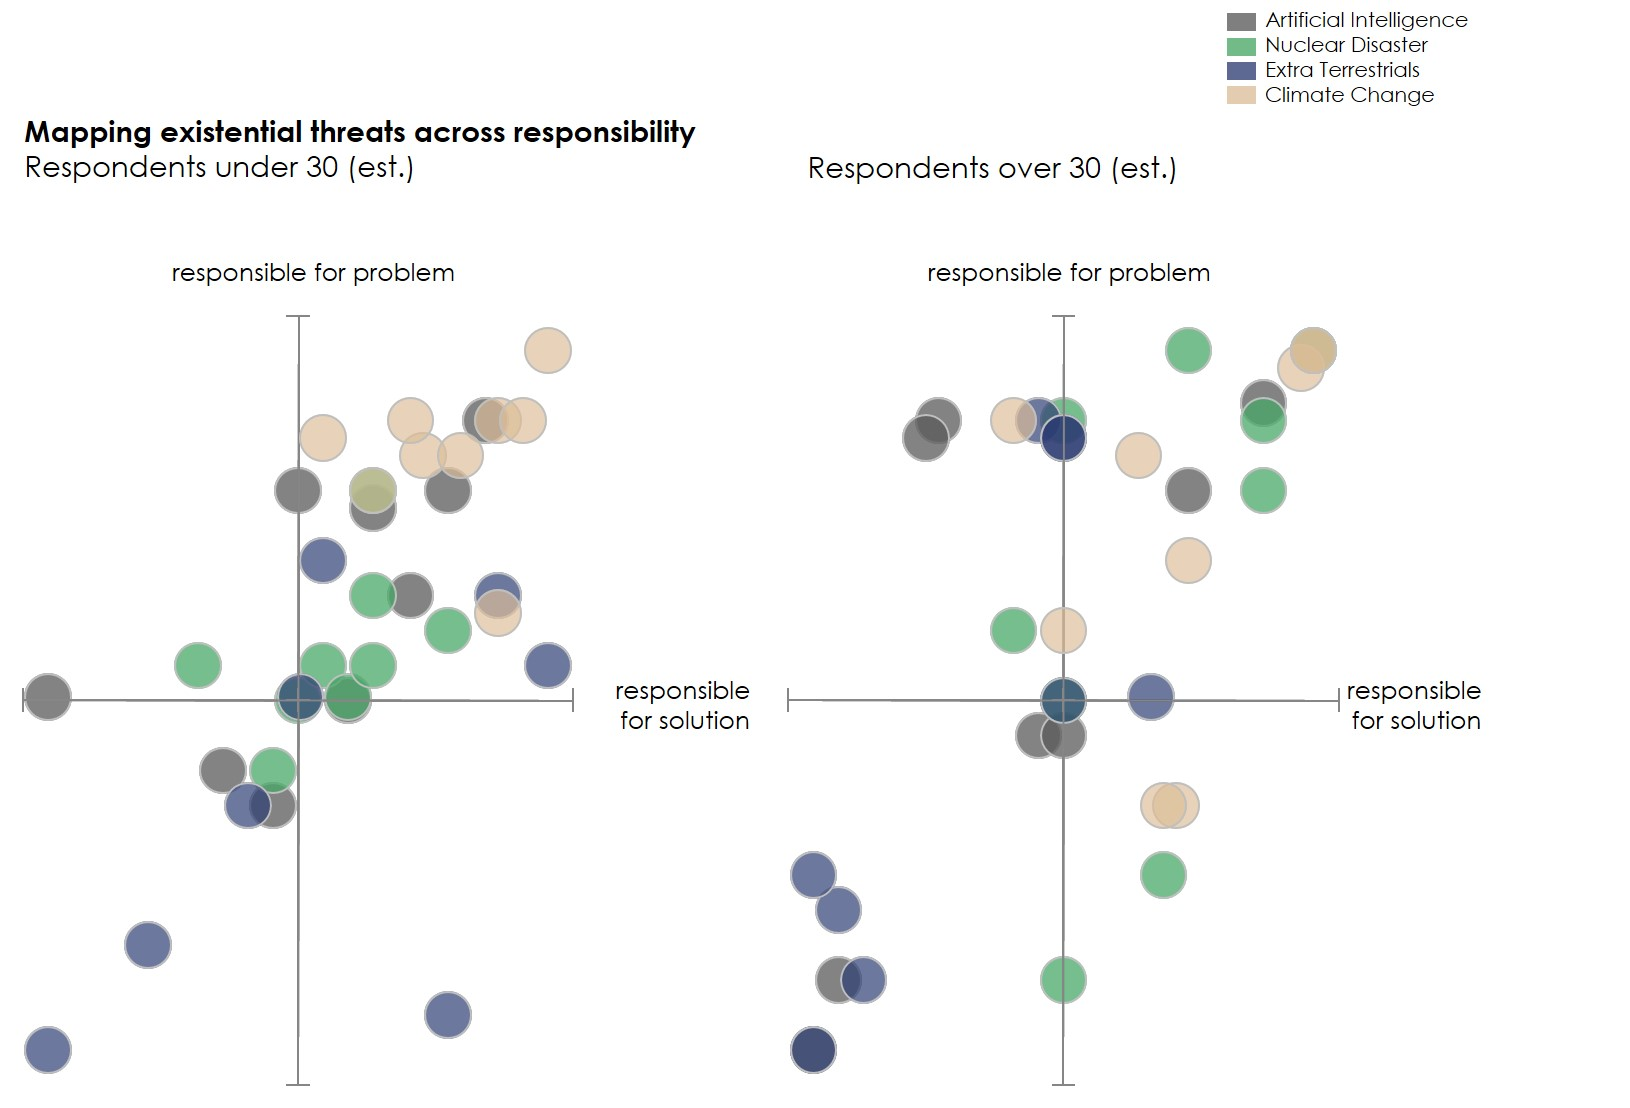 Survey results: Mapping existential threats across responsibilty